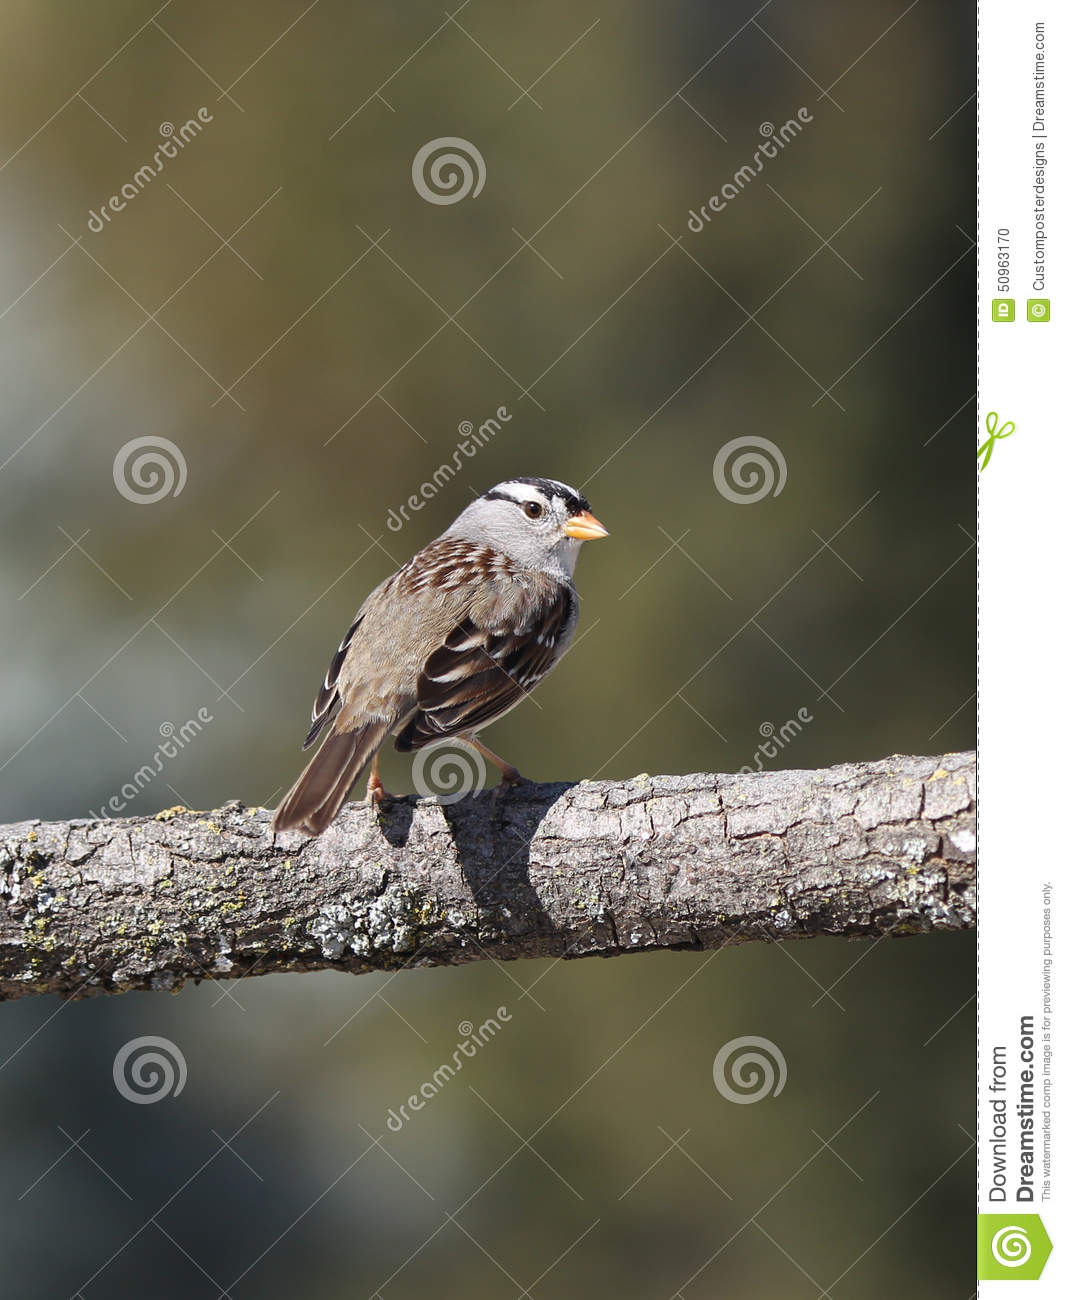 Download A White Crowned Sparrow In The Wild. Stock Photo - Image of tree, photo: 50963170